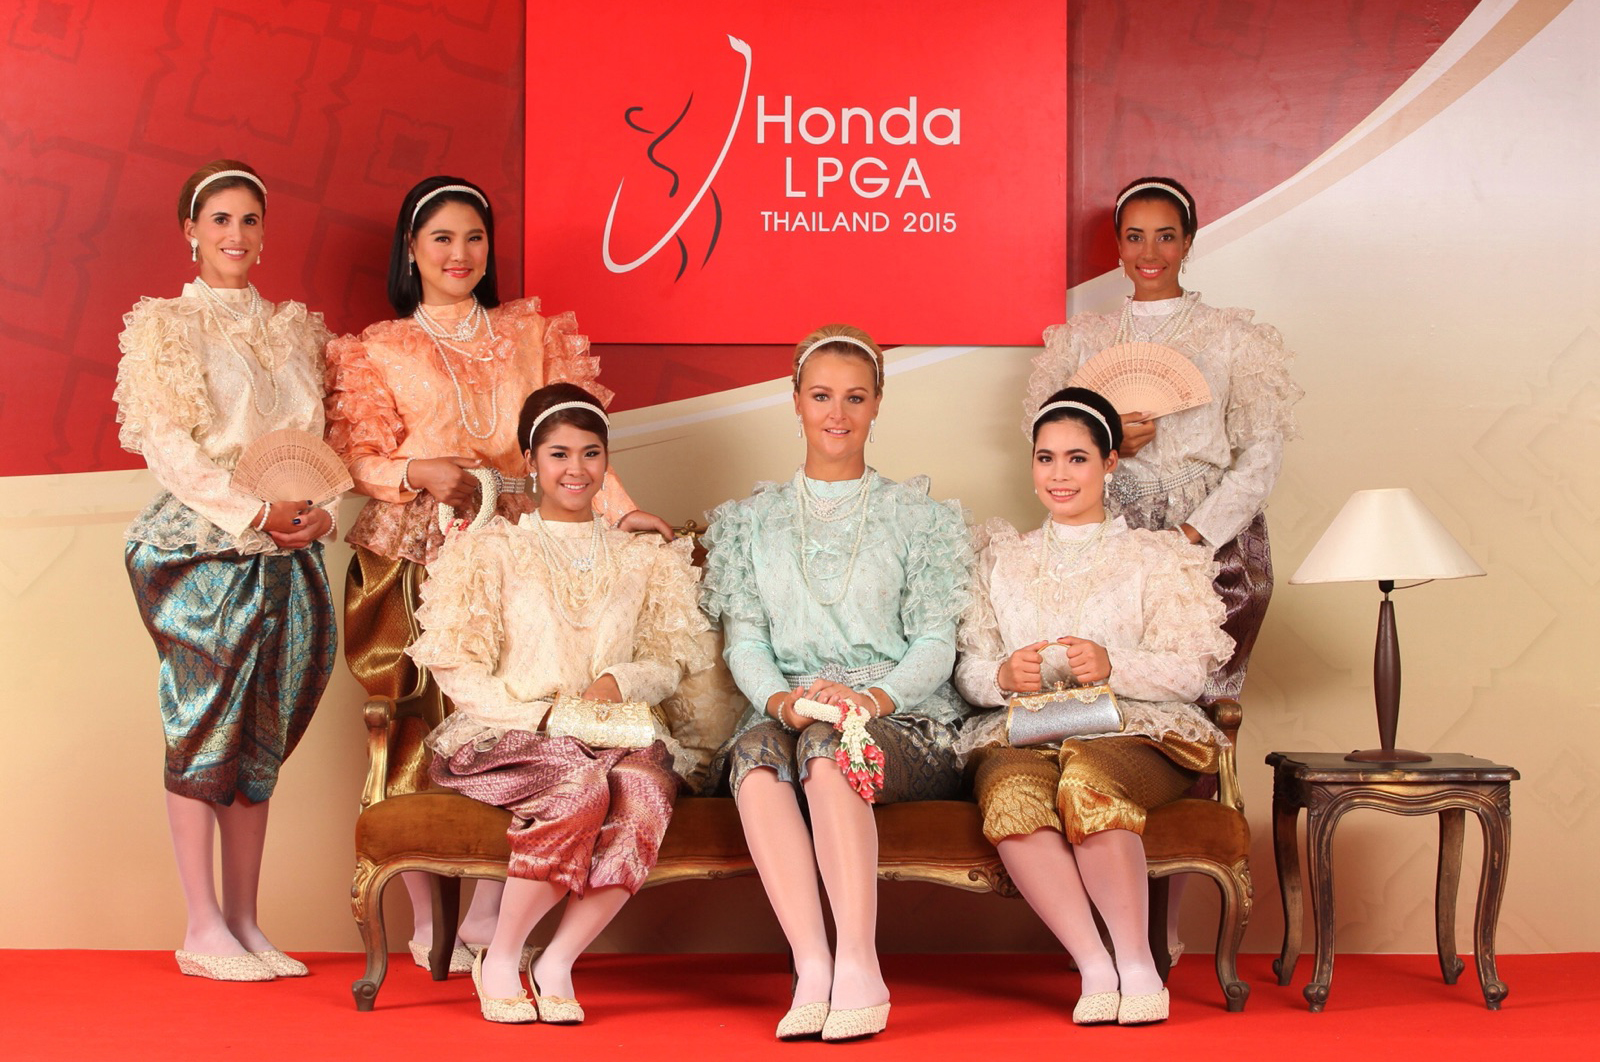 A fun photo prior to the 2015 Honda LPGA Thailand